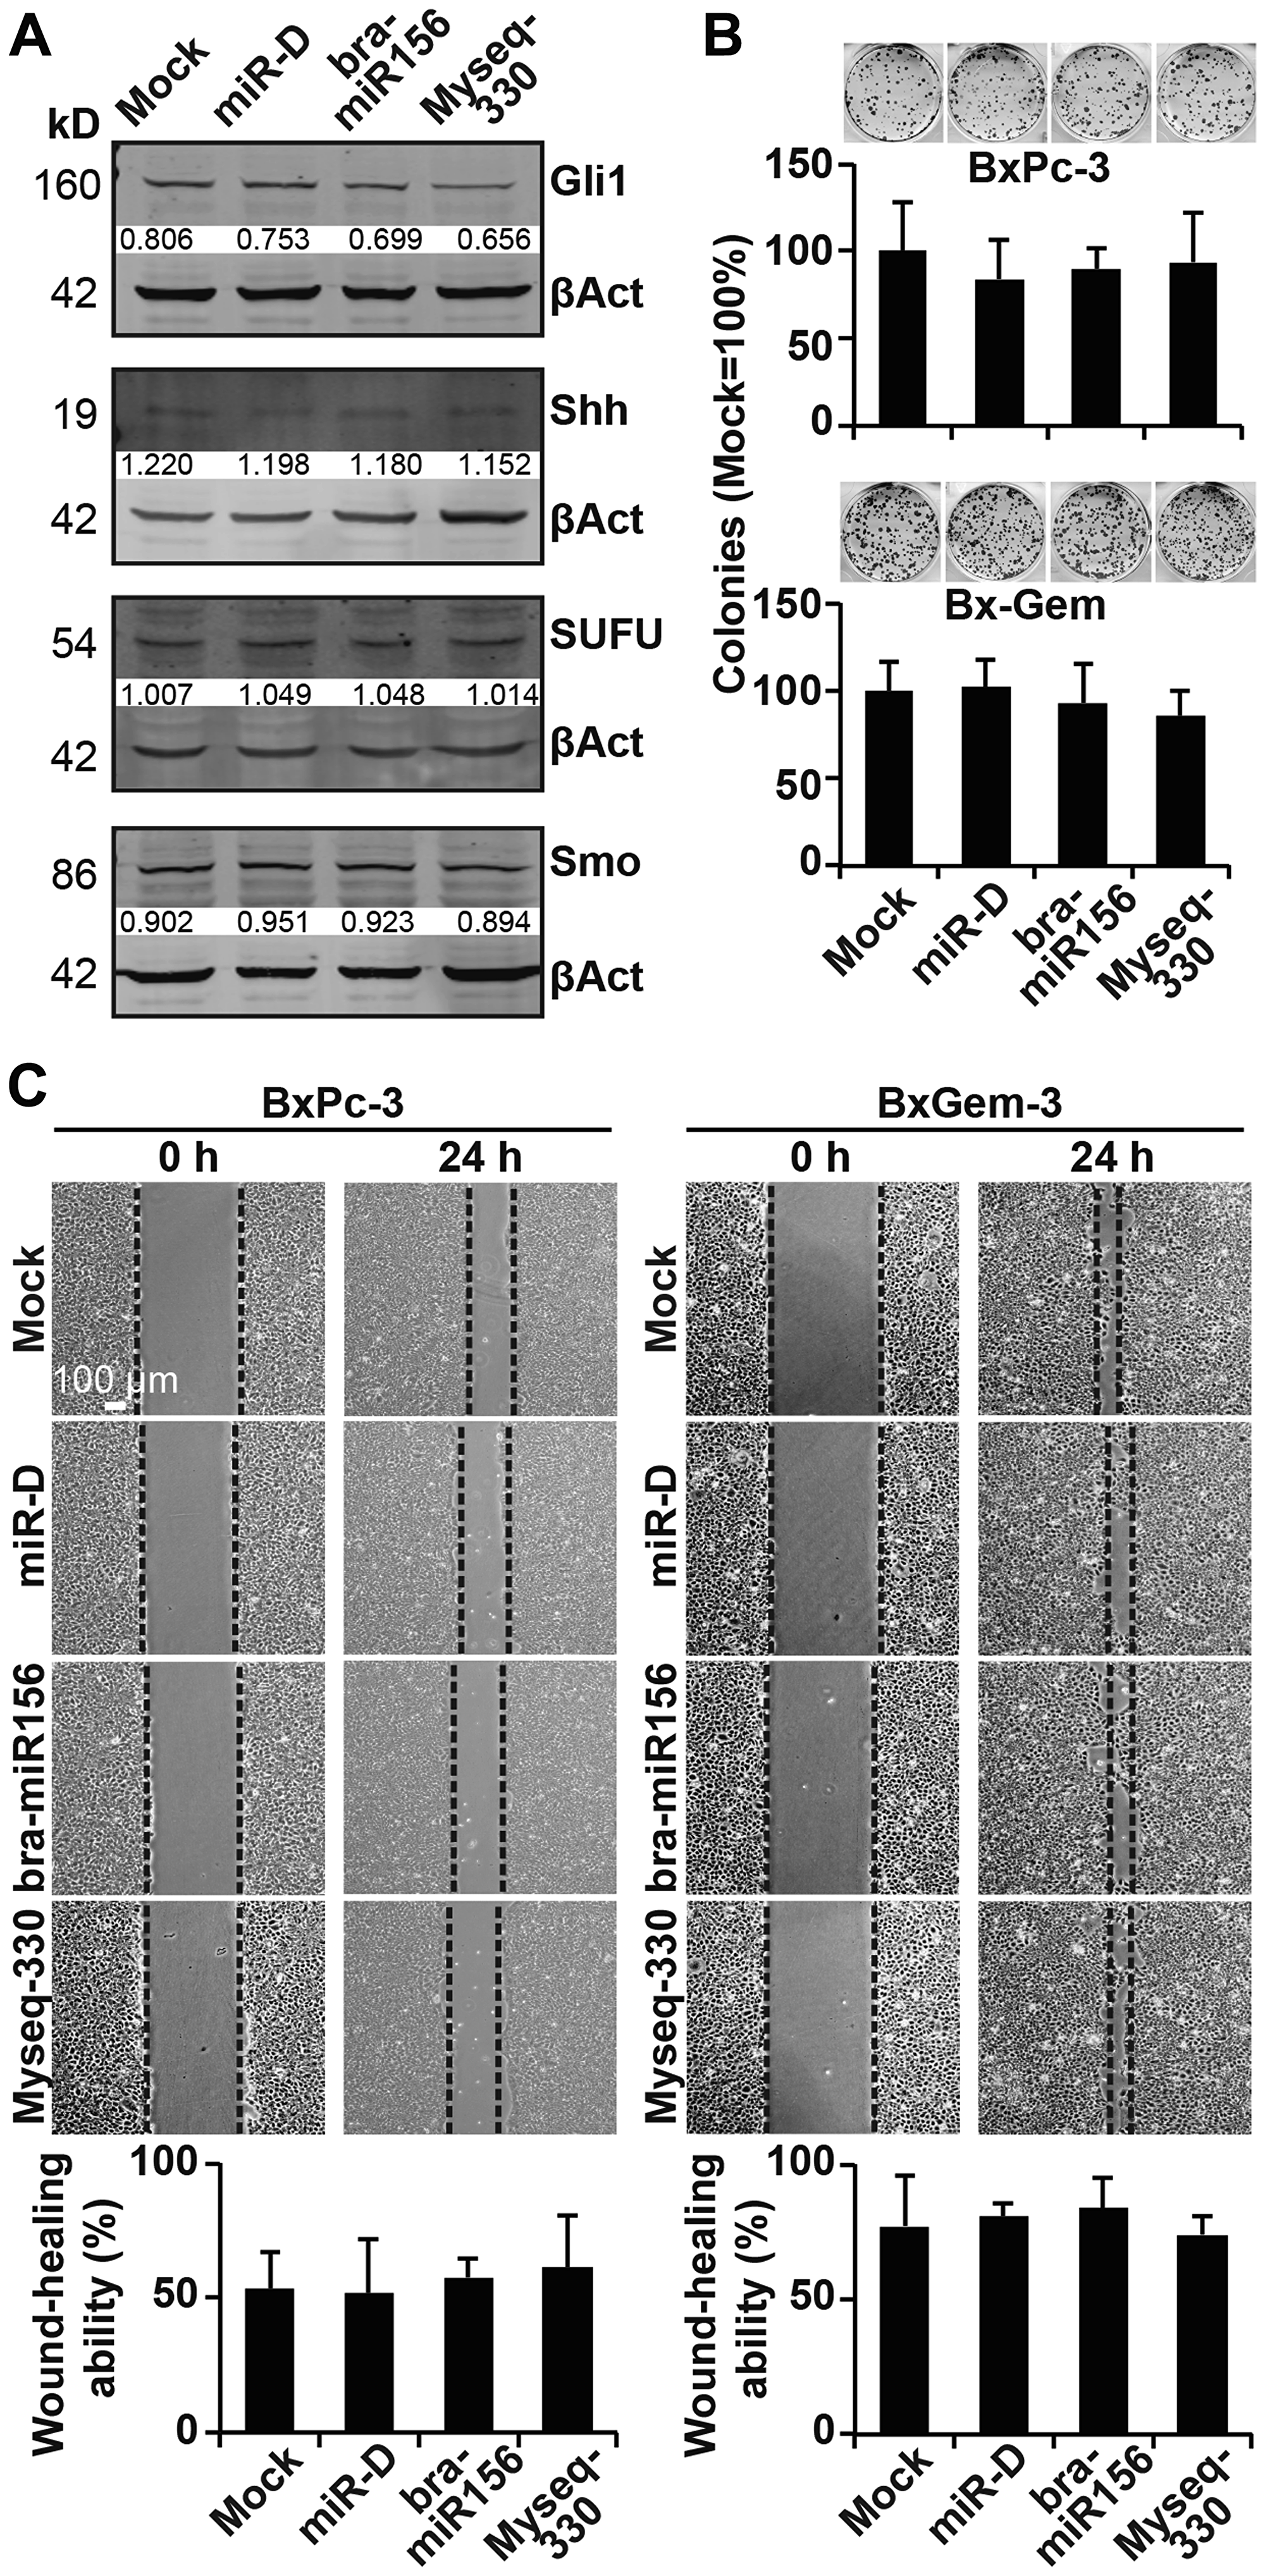 Lipofection of the top broccoletti-miR candidates does not affect clonogenicity and migration.